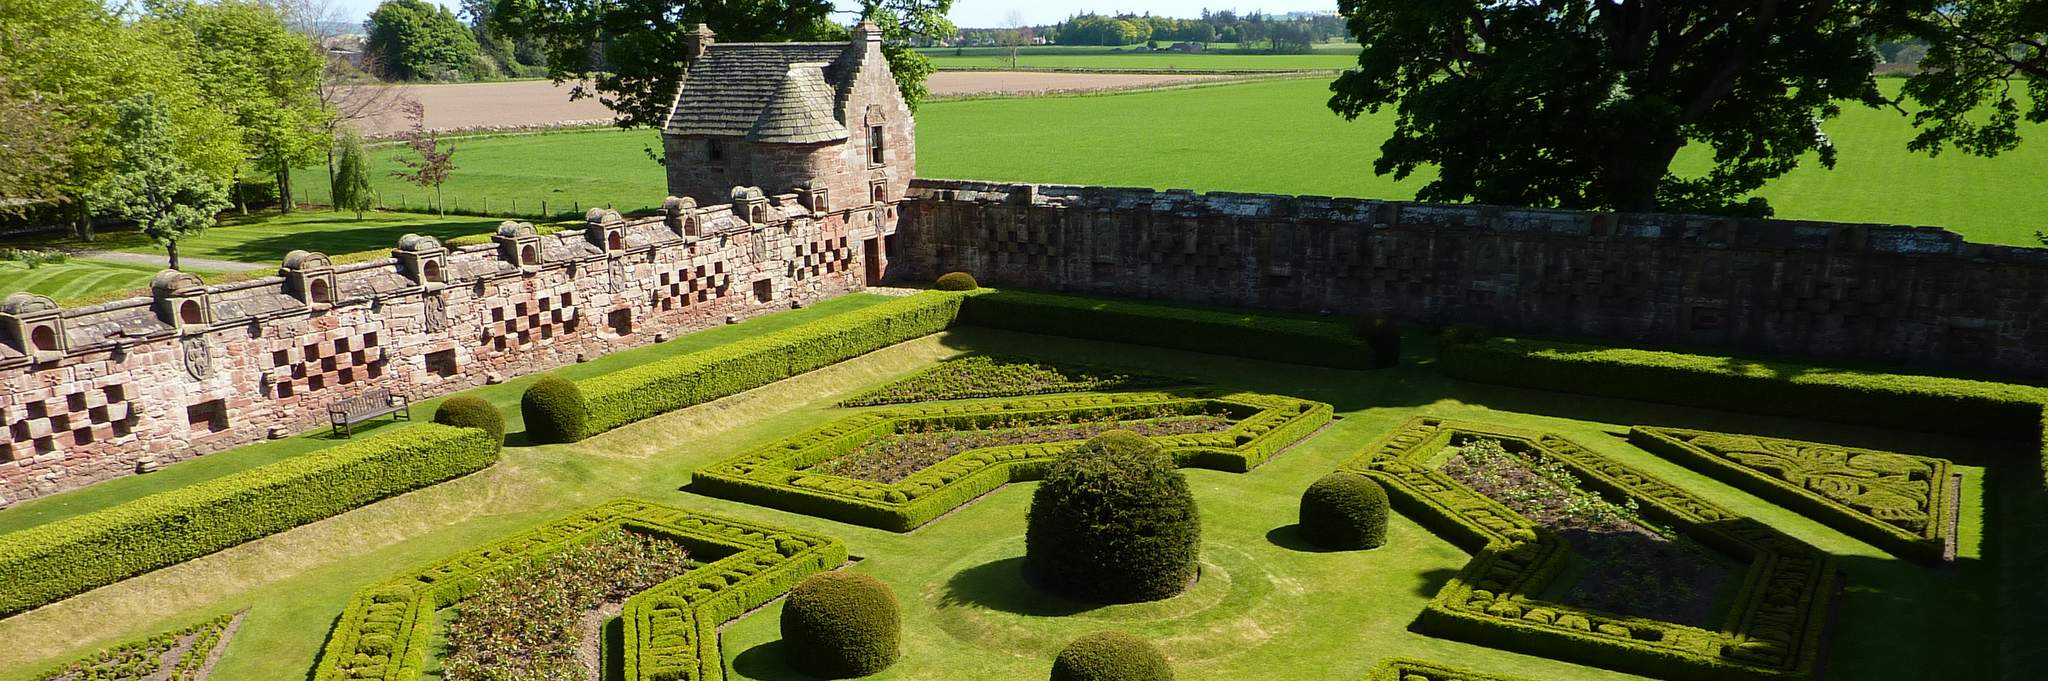 Gardens in Angus & Dundee